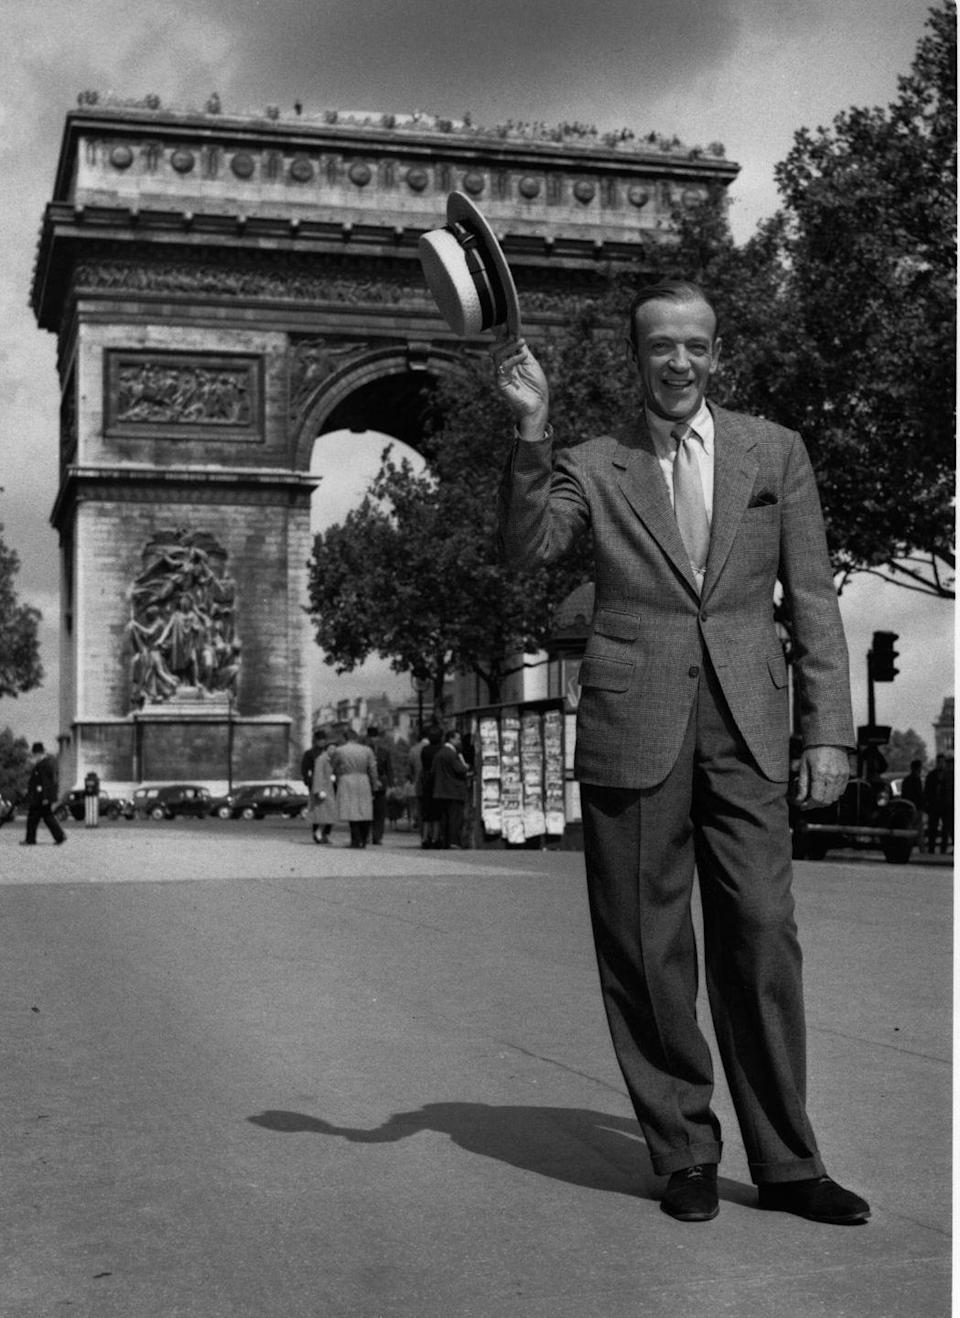 <p>Yet another historic snap from the filming of <em>Funny Face</em>. Here, Fred Astaire tips his cap in front of the Arc de Triomphe.</p>